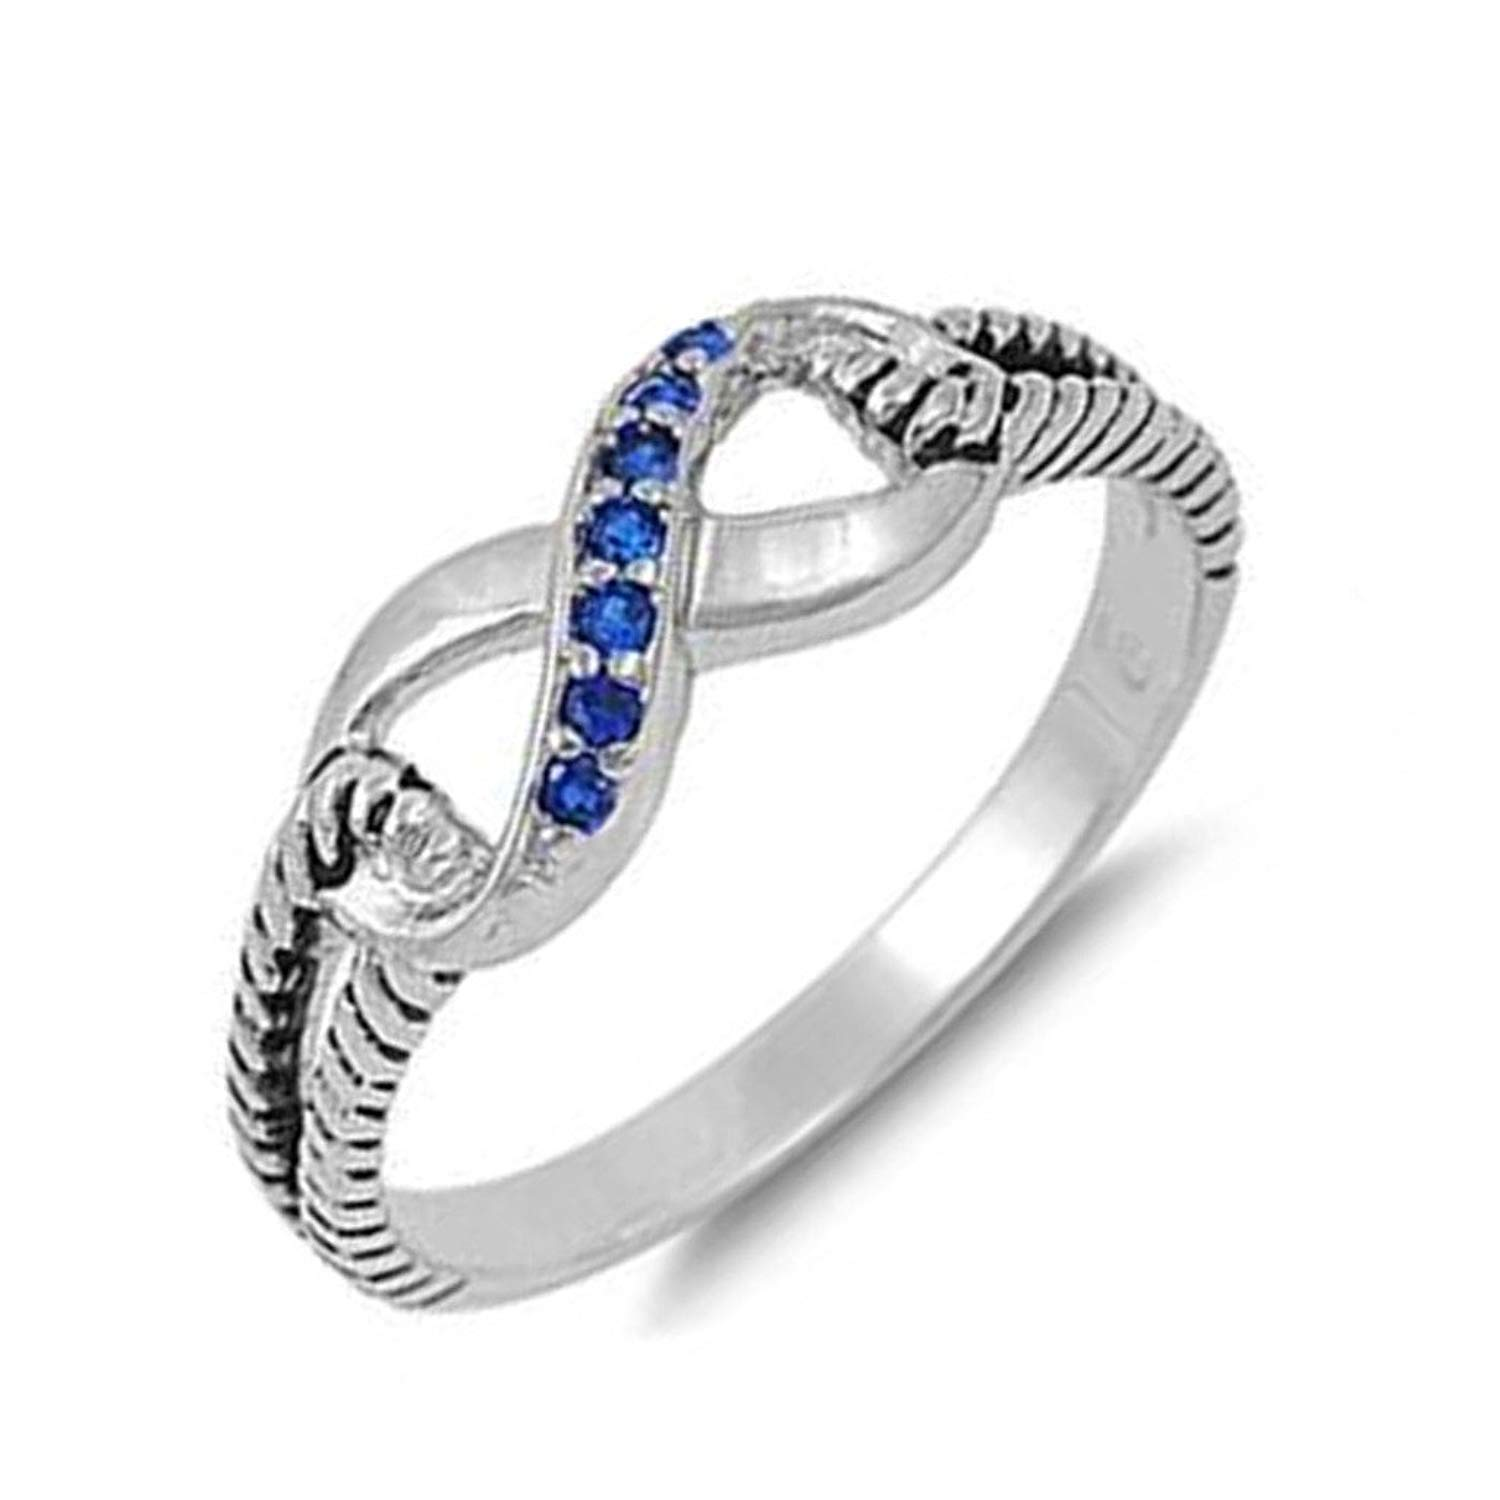 Infinity Knot Synthetic Sapphire Cubic Zirconia Rope Band .925 Sterling Silver Trendy Ring Sizes 4-11